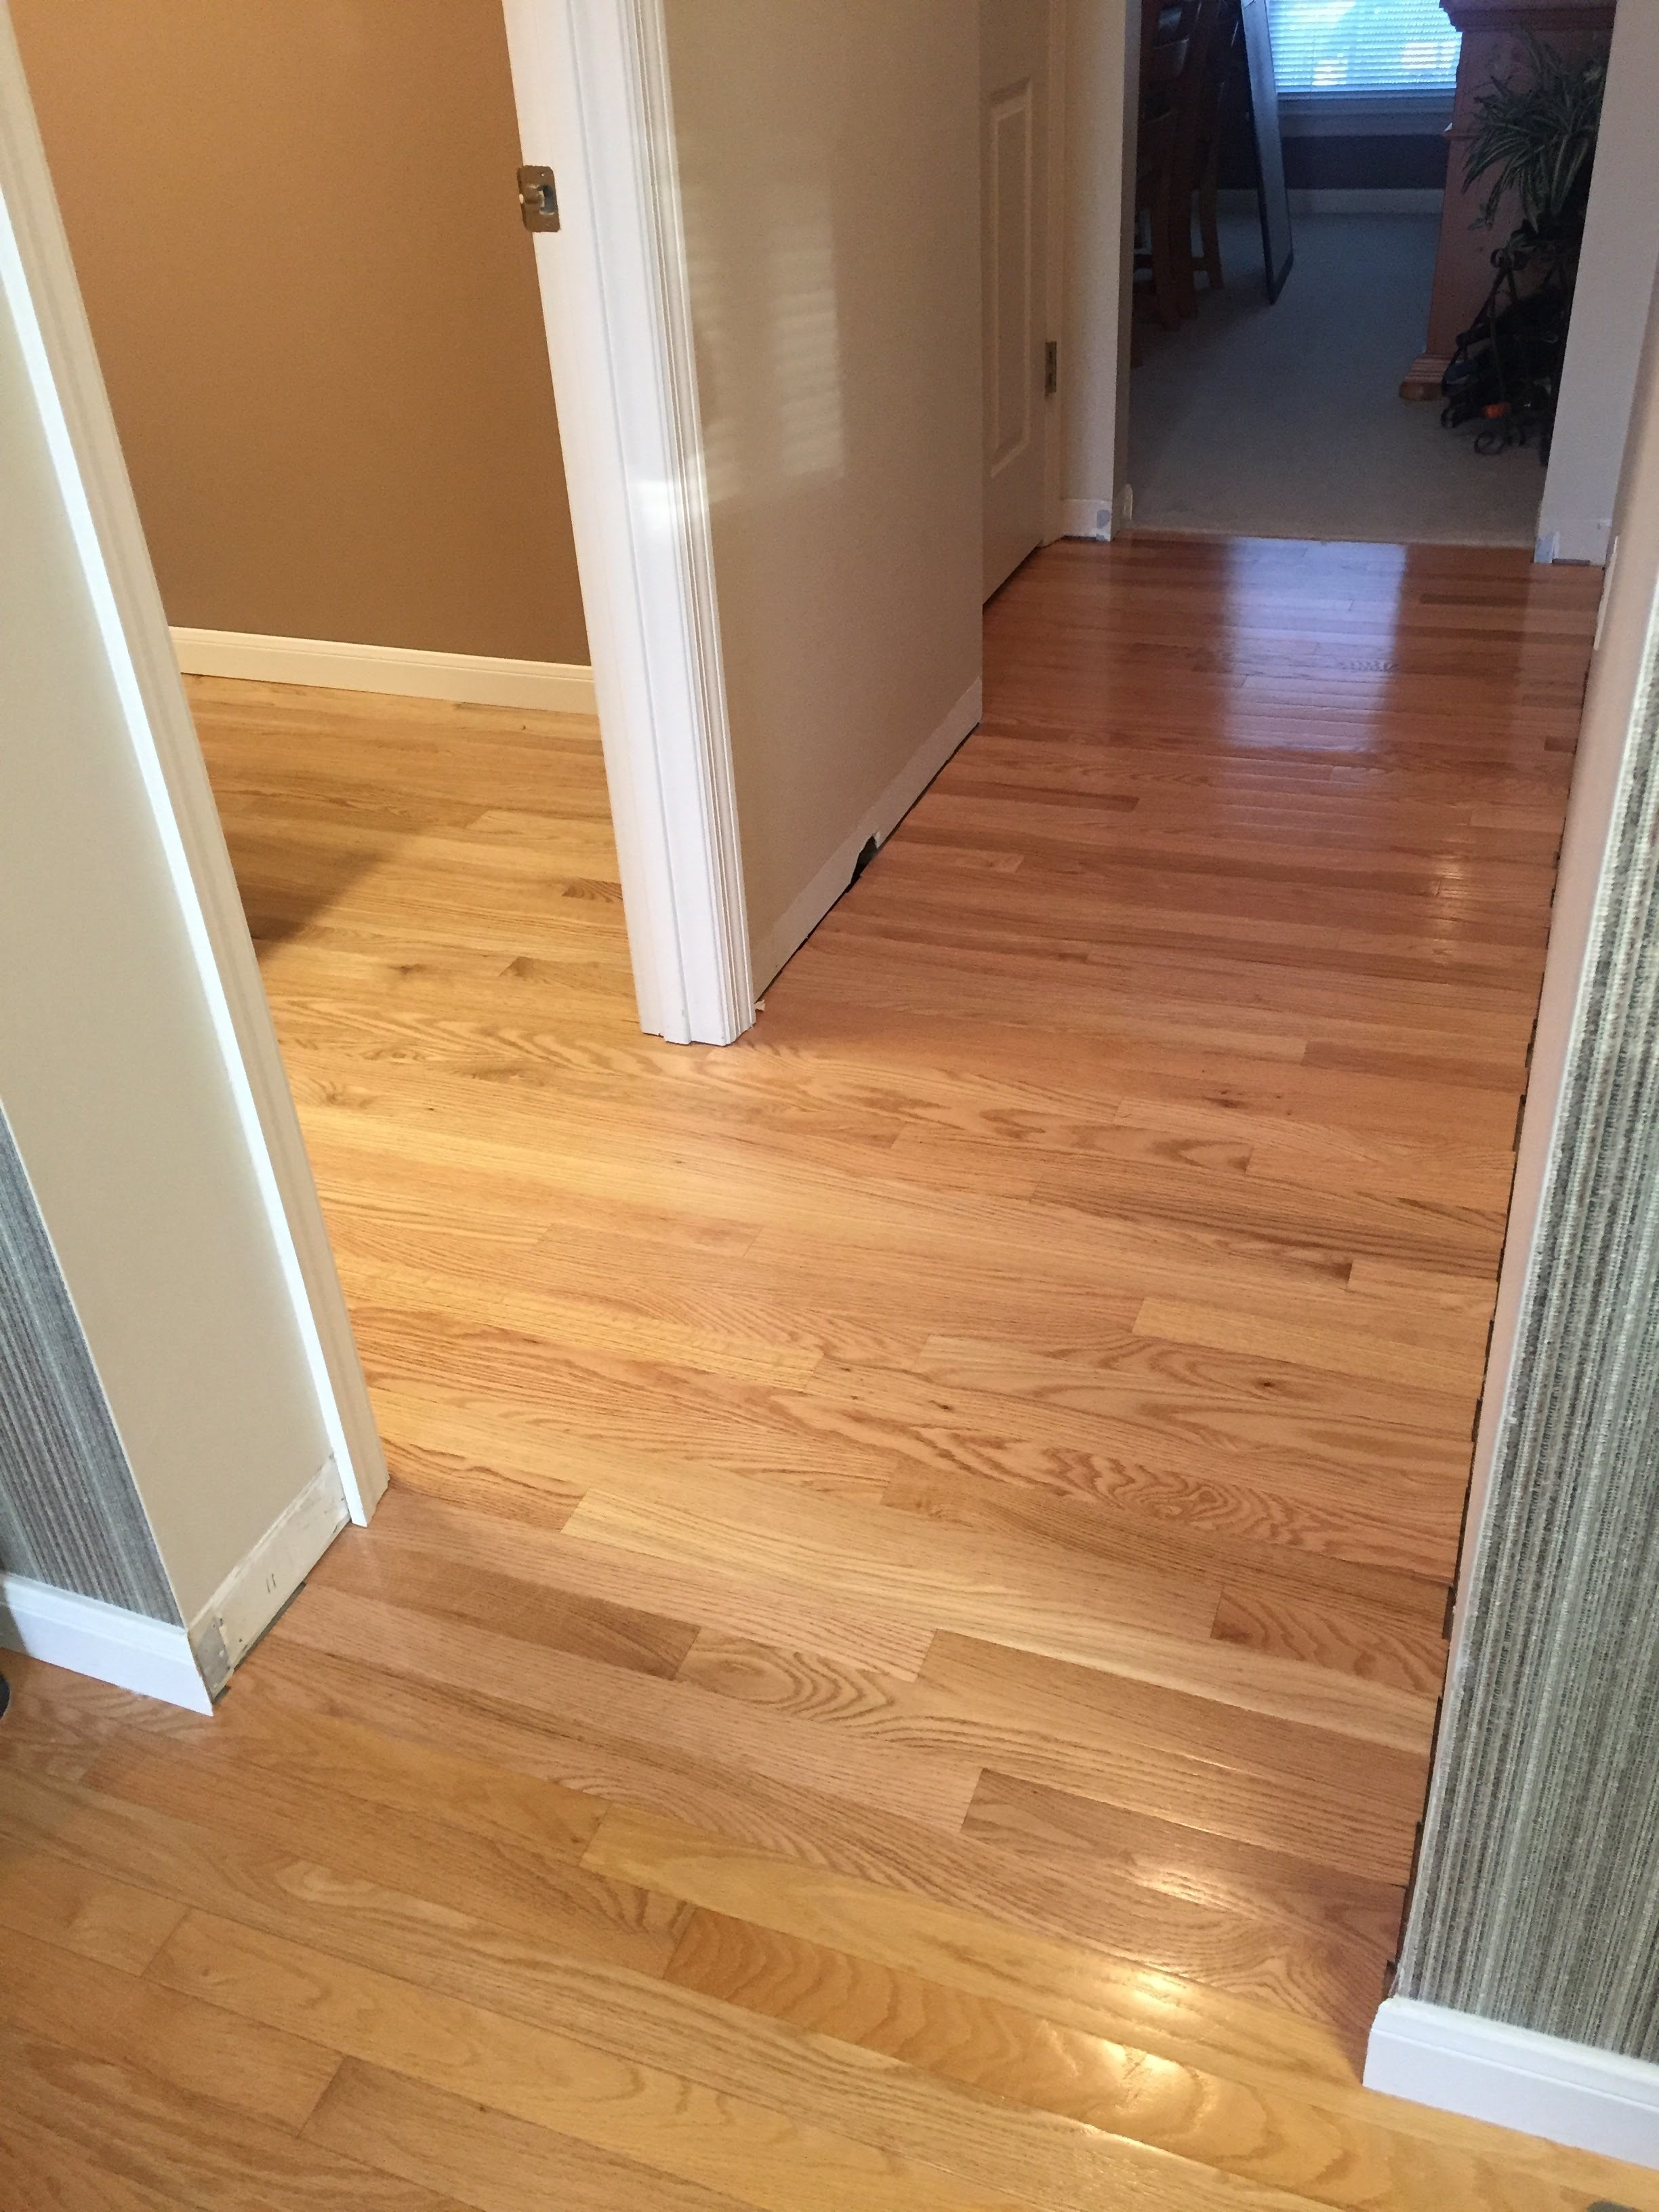 Oak hardwood floors in West County